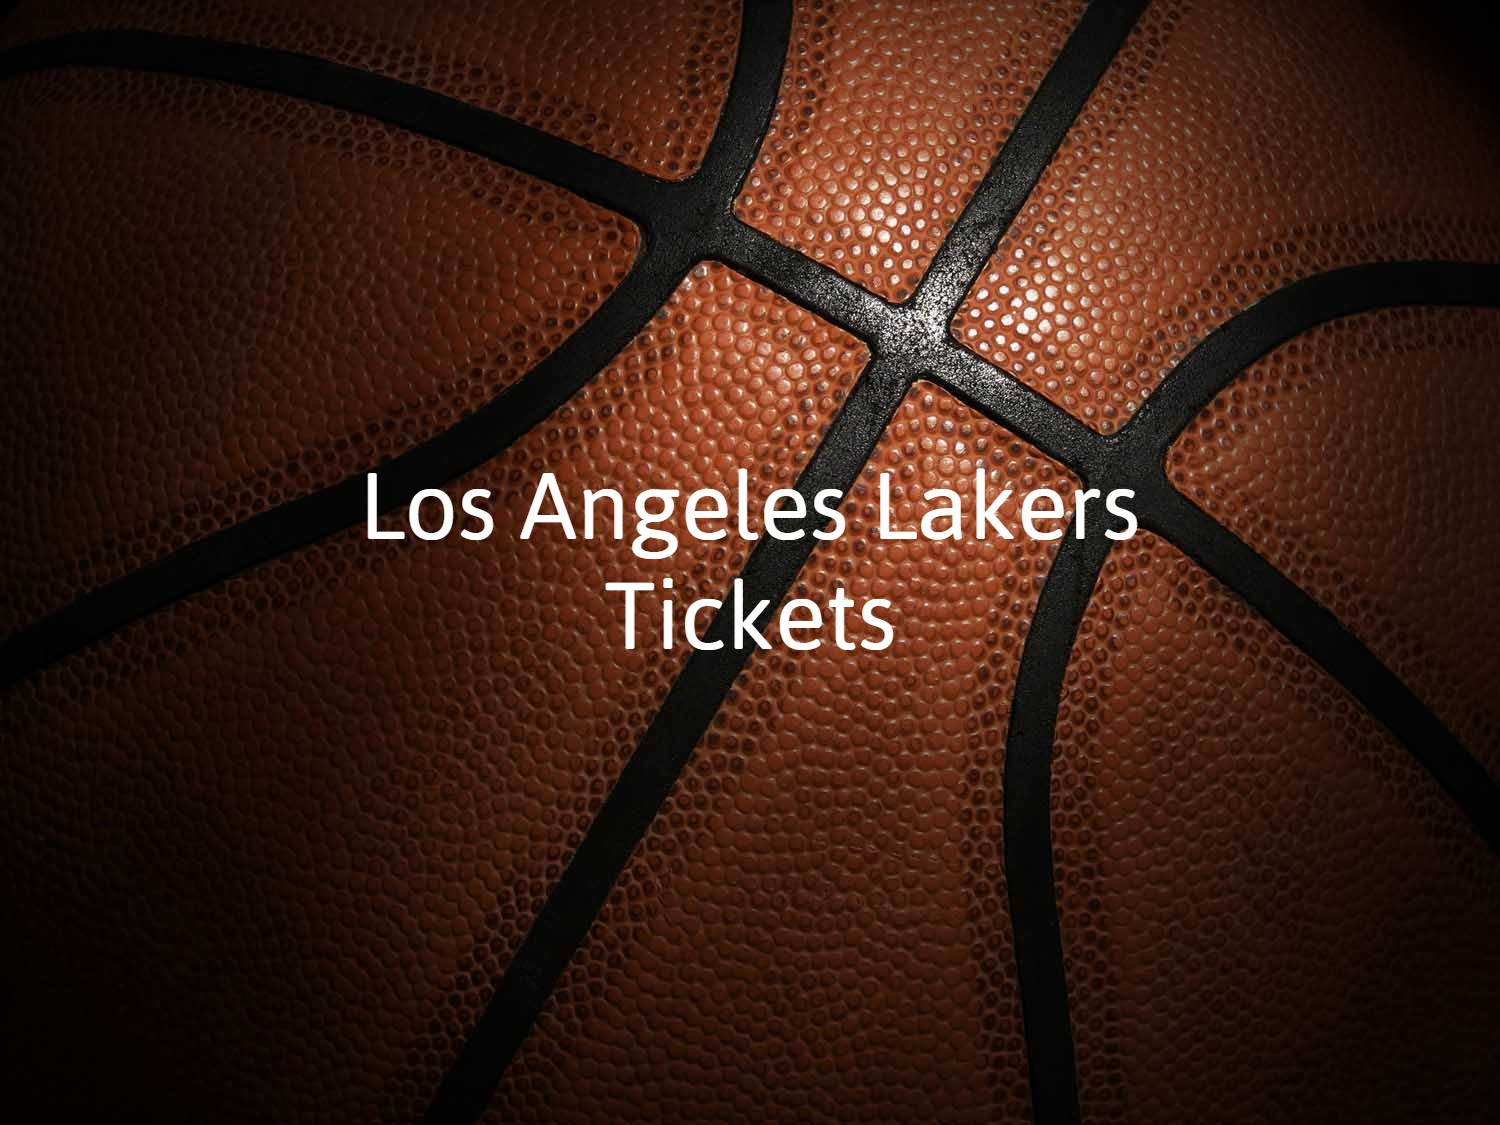 Los Angeles Lakers TIckets